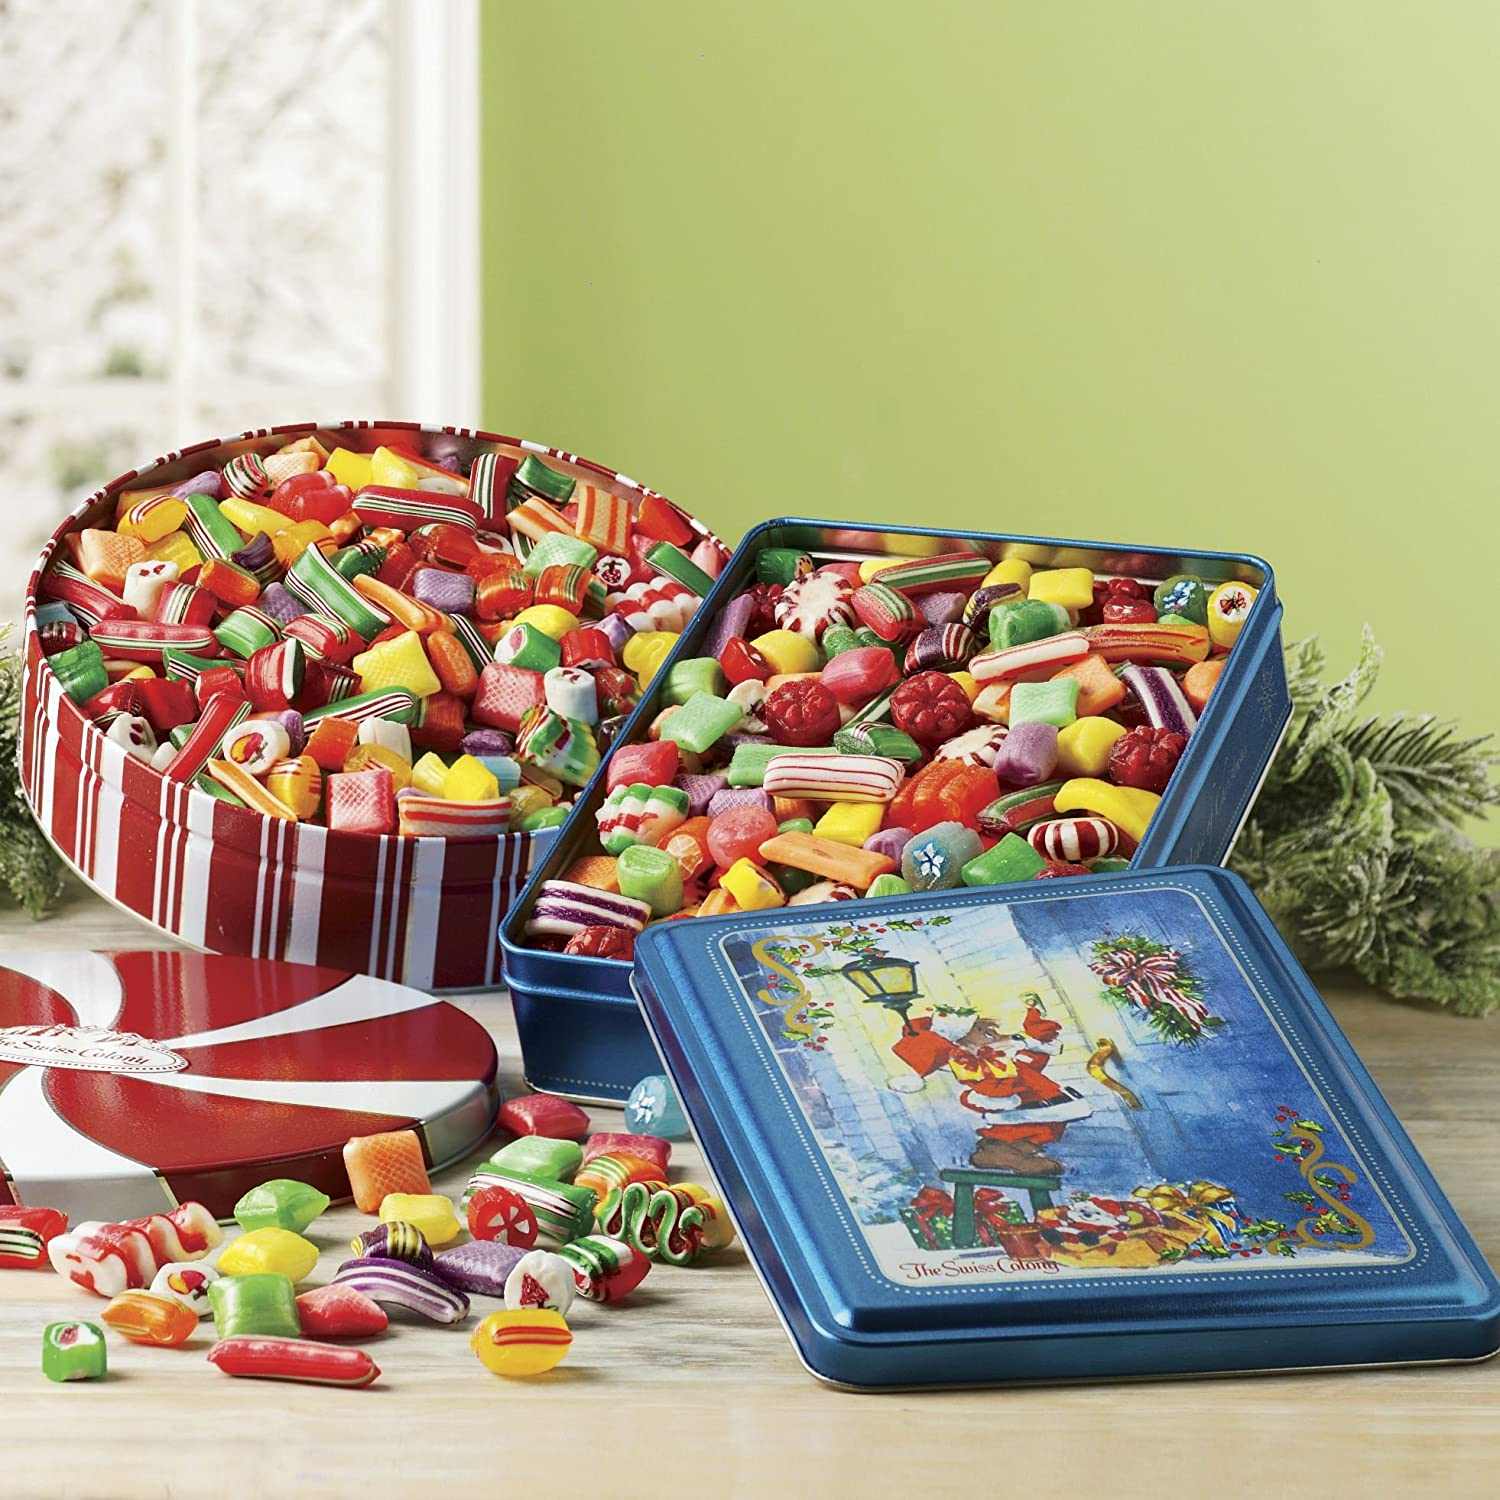 Amazon.com : 2-lbs. net wt. Old-fashioned Christmas Candy from The ...